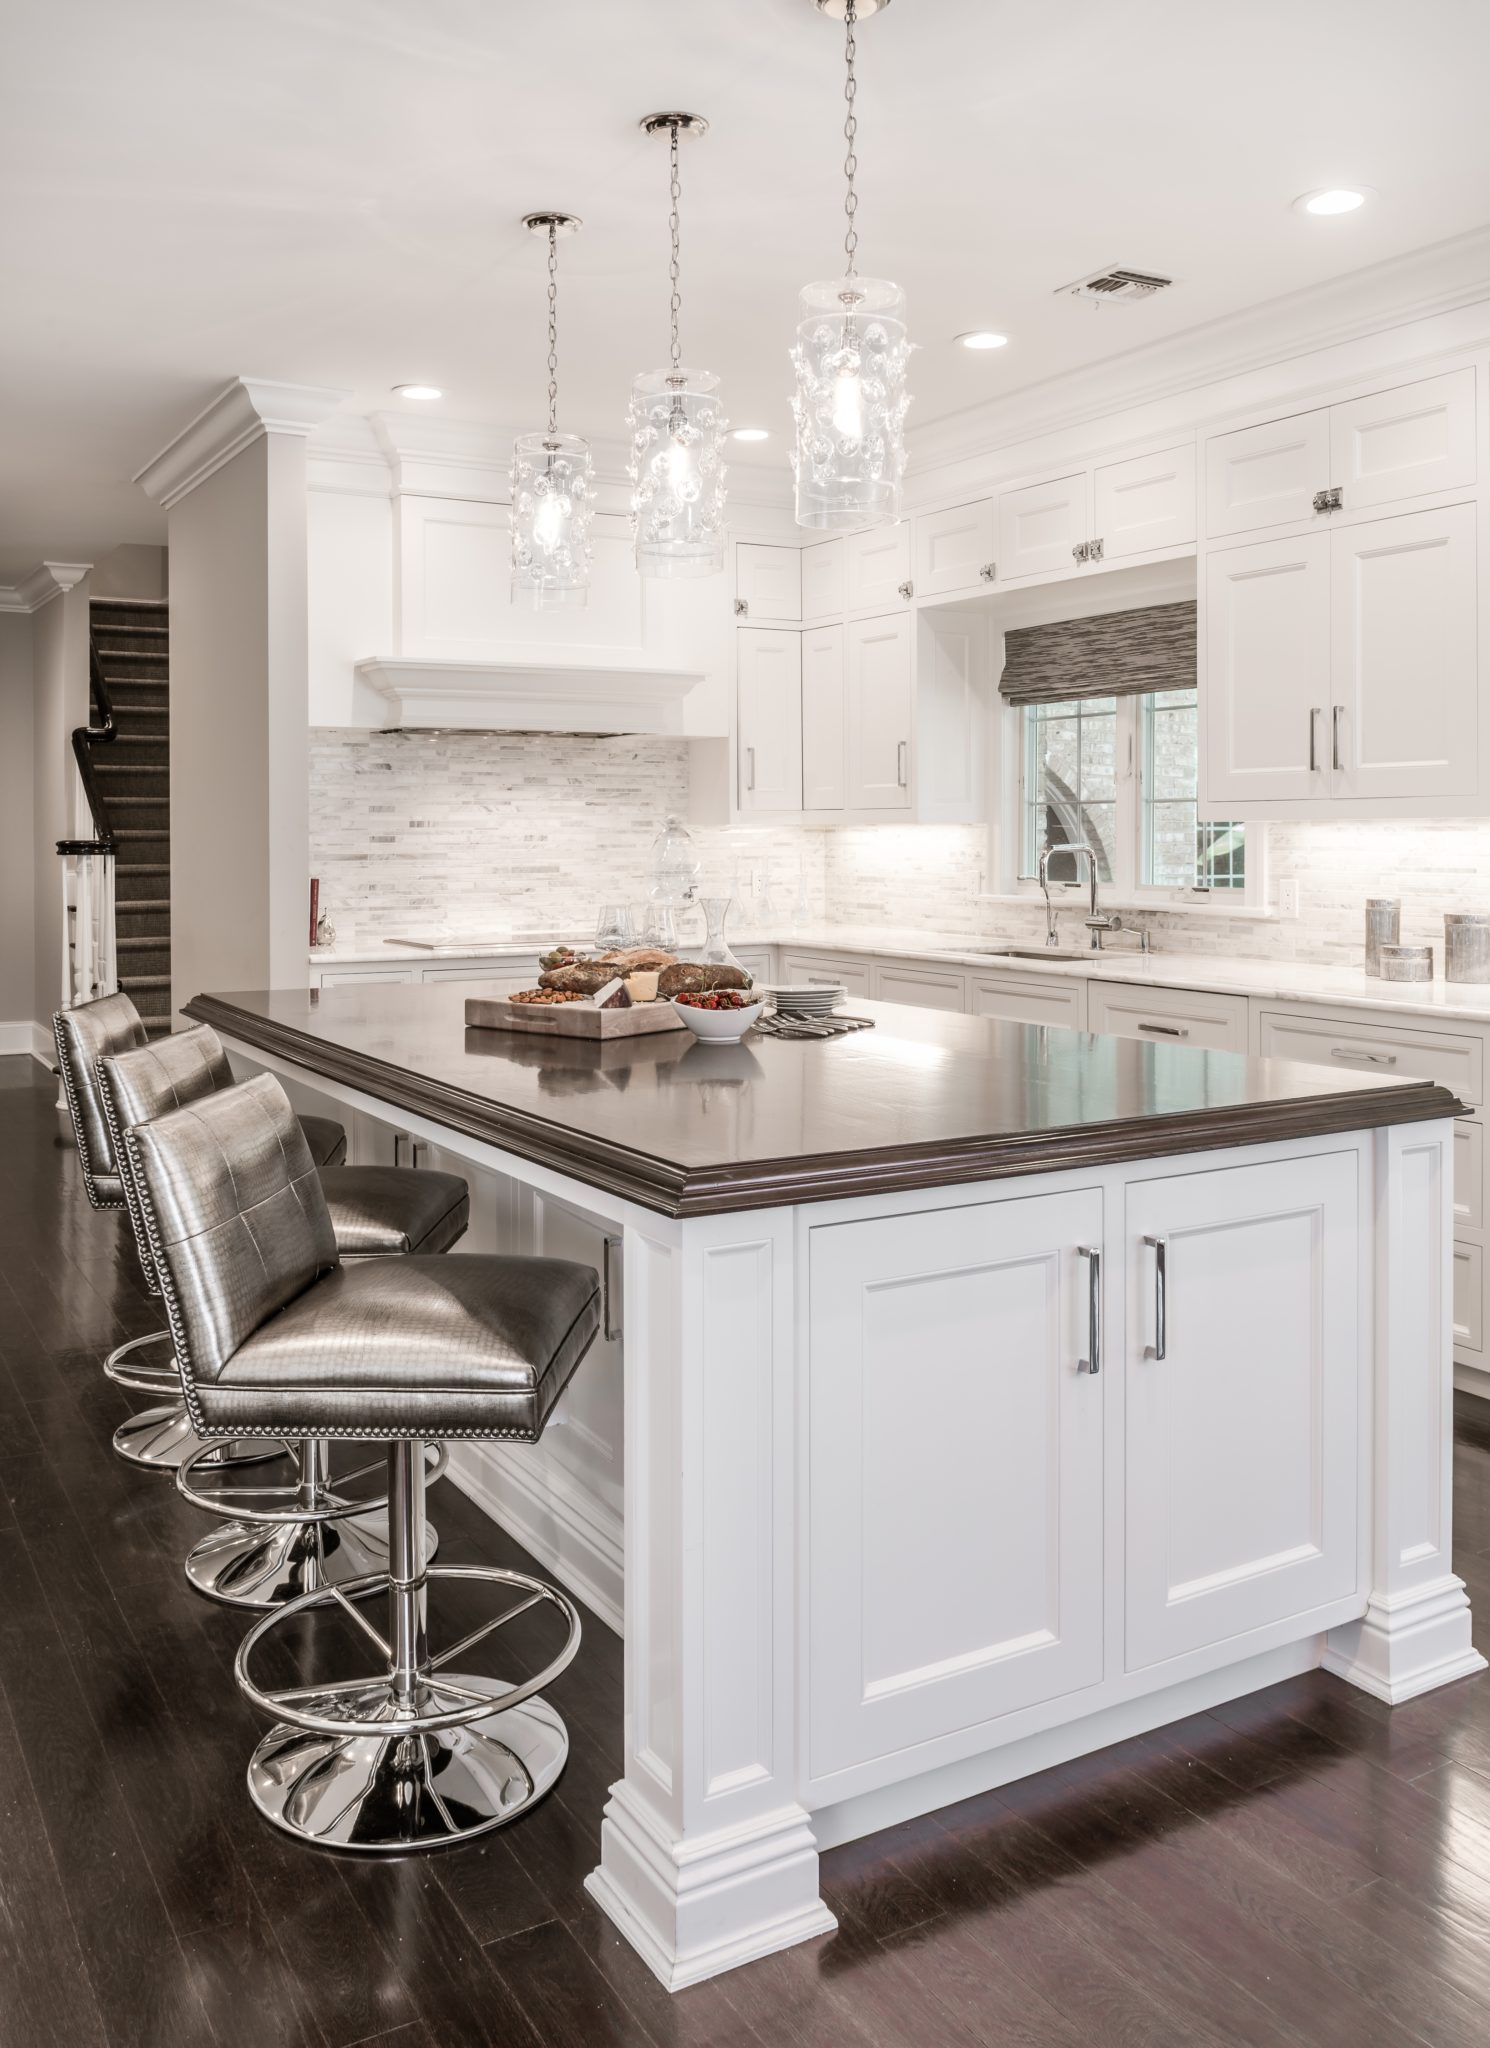 Beautiful island details and lighting in this open concept kitchen. By Kim Radovich Interiors